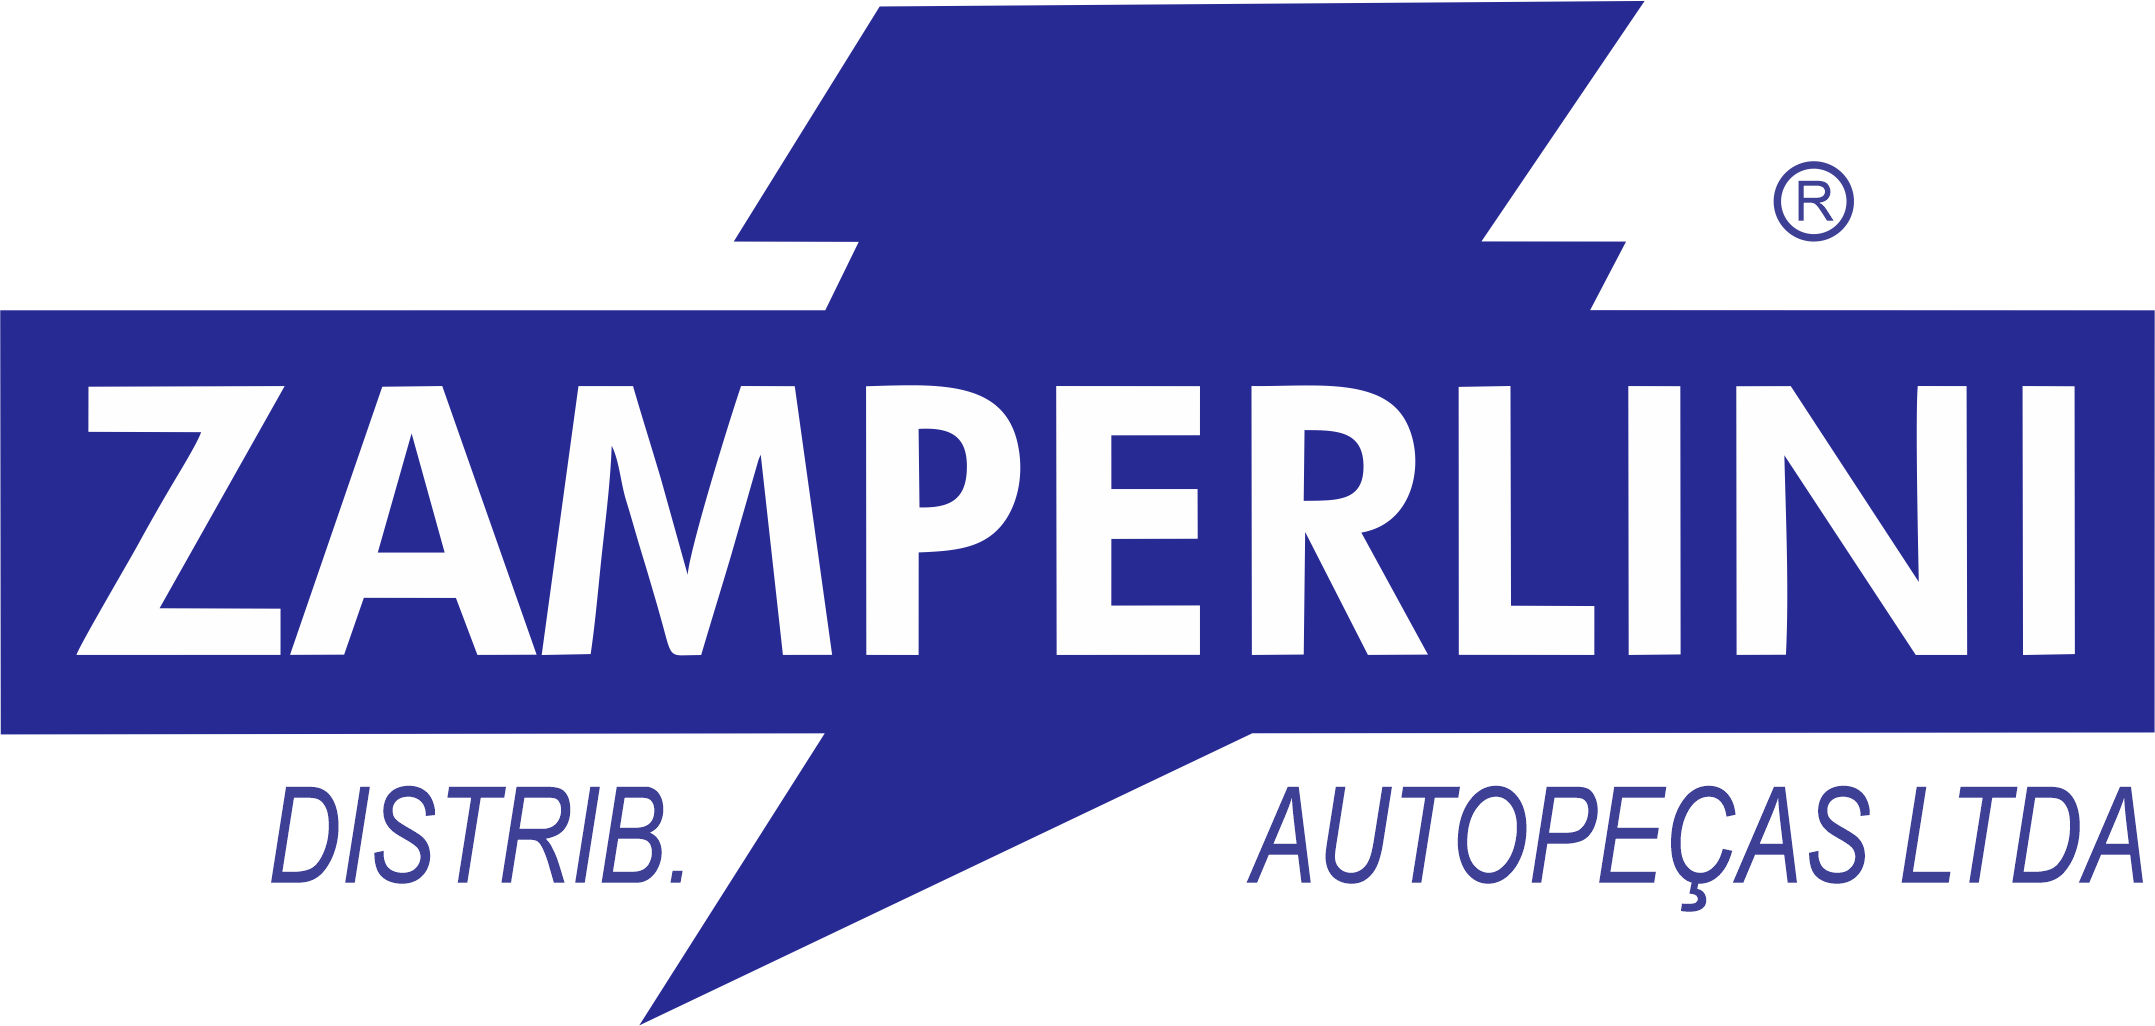 Zamperlini